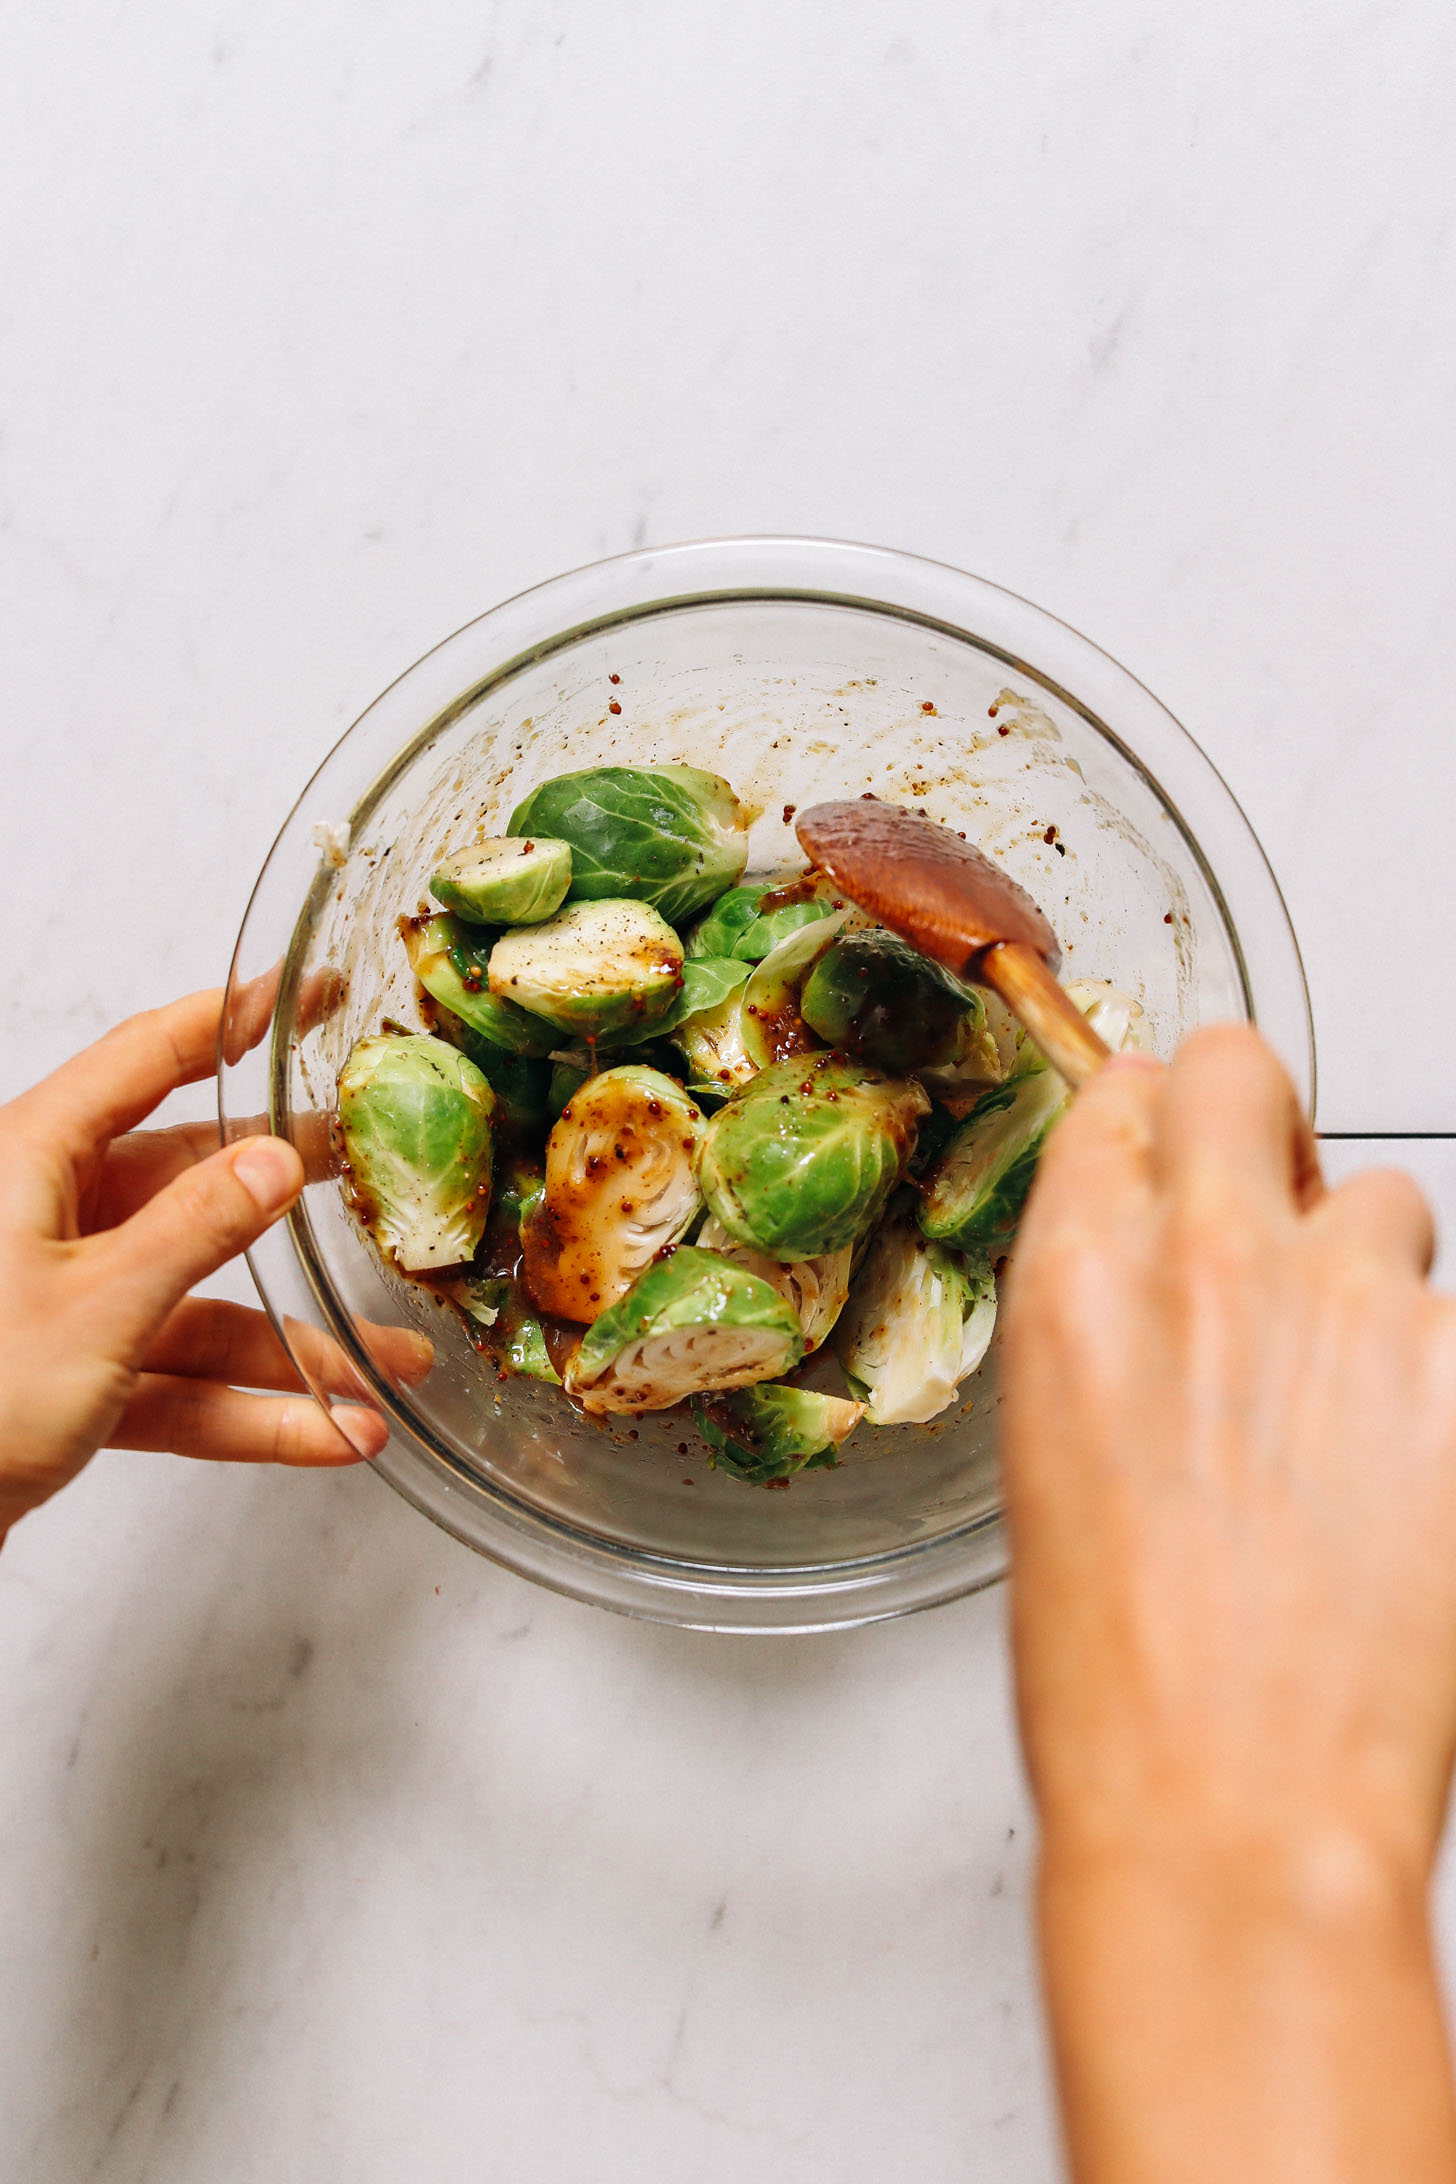 Stirring halved Brussels sprouts in a honey mustard dressing